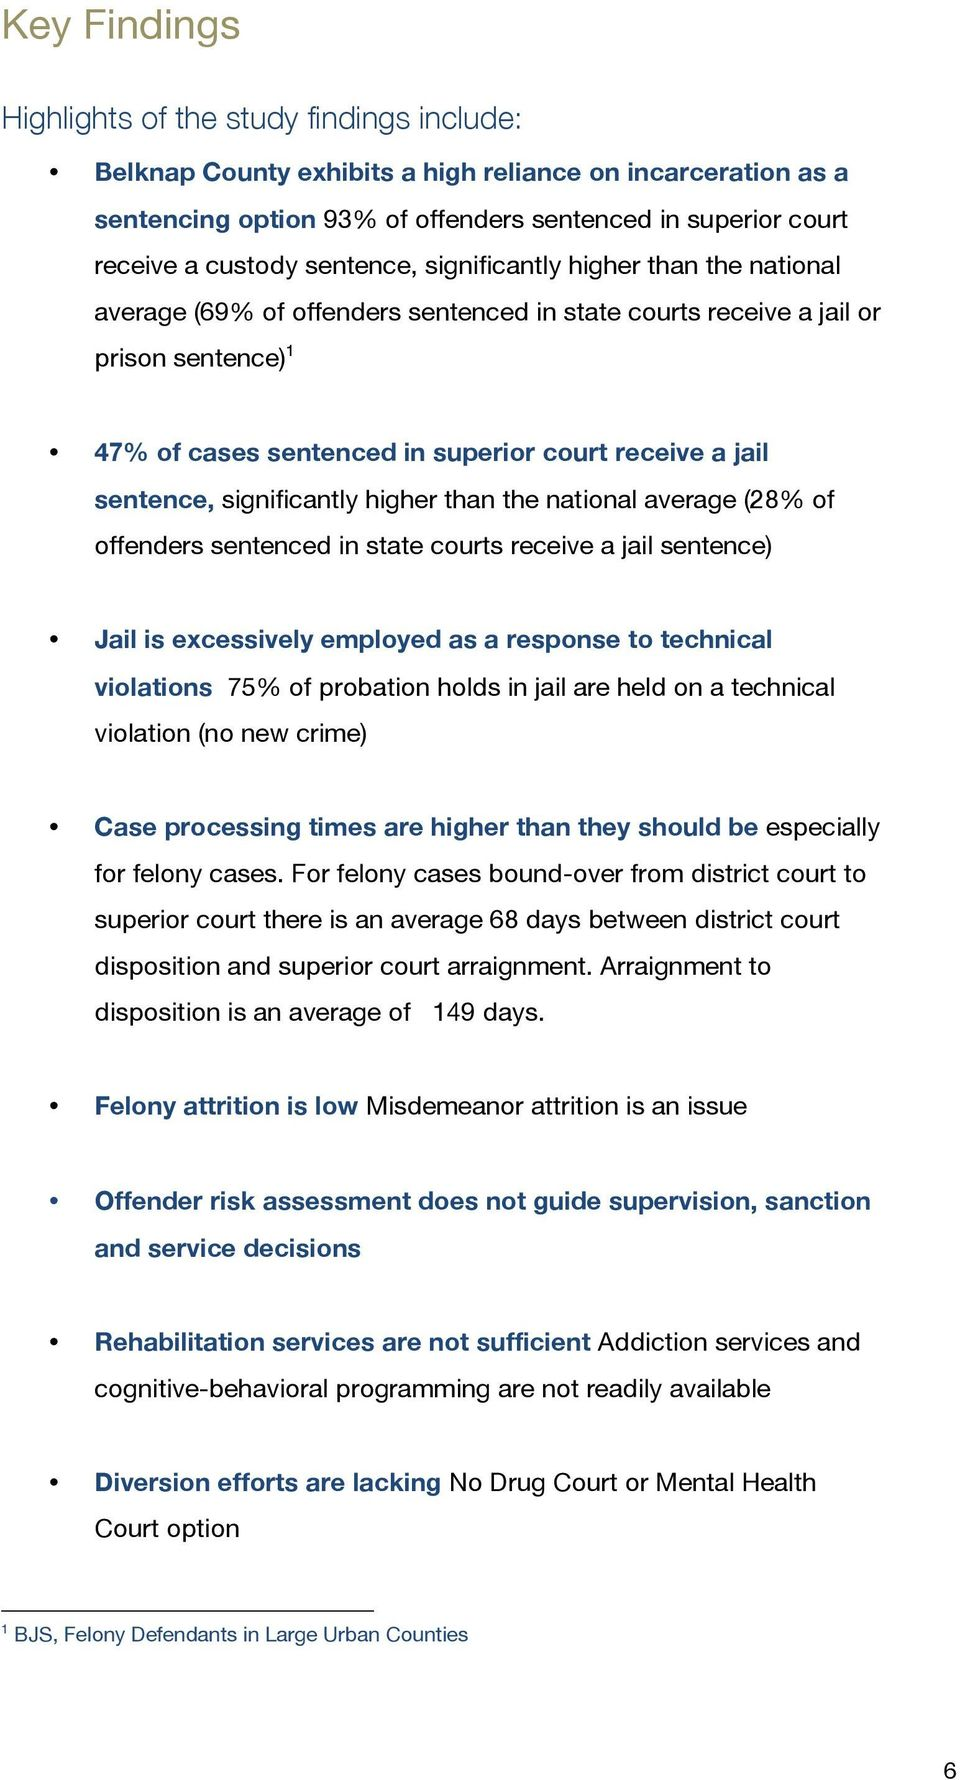 sentence, significantly higher than the national average (28% of offenders sentenced in state courts receive a jail sentence) Jail is excessively employed as a response to technical violations 75% of